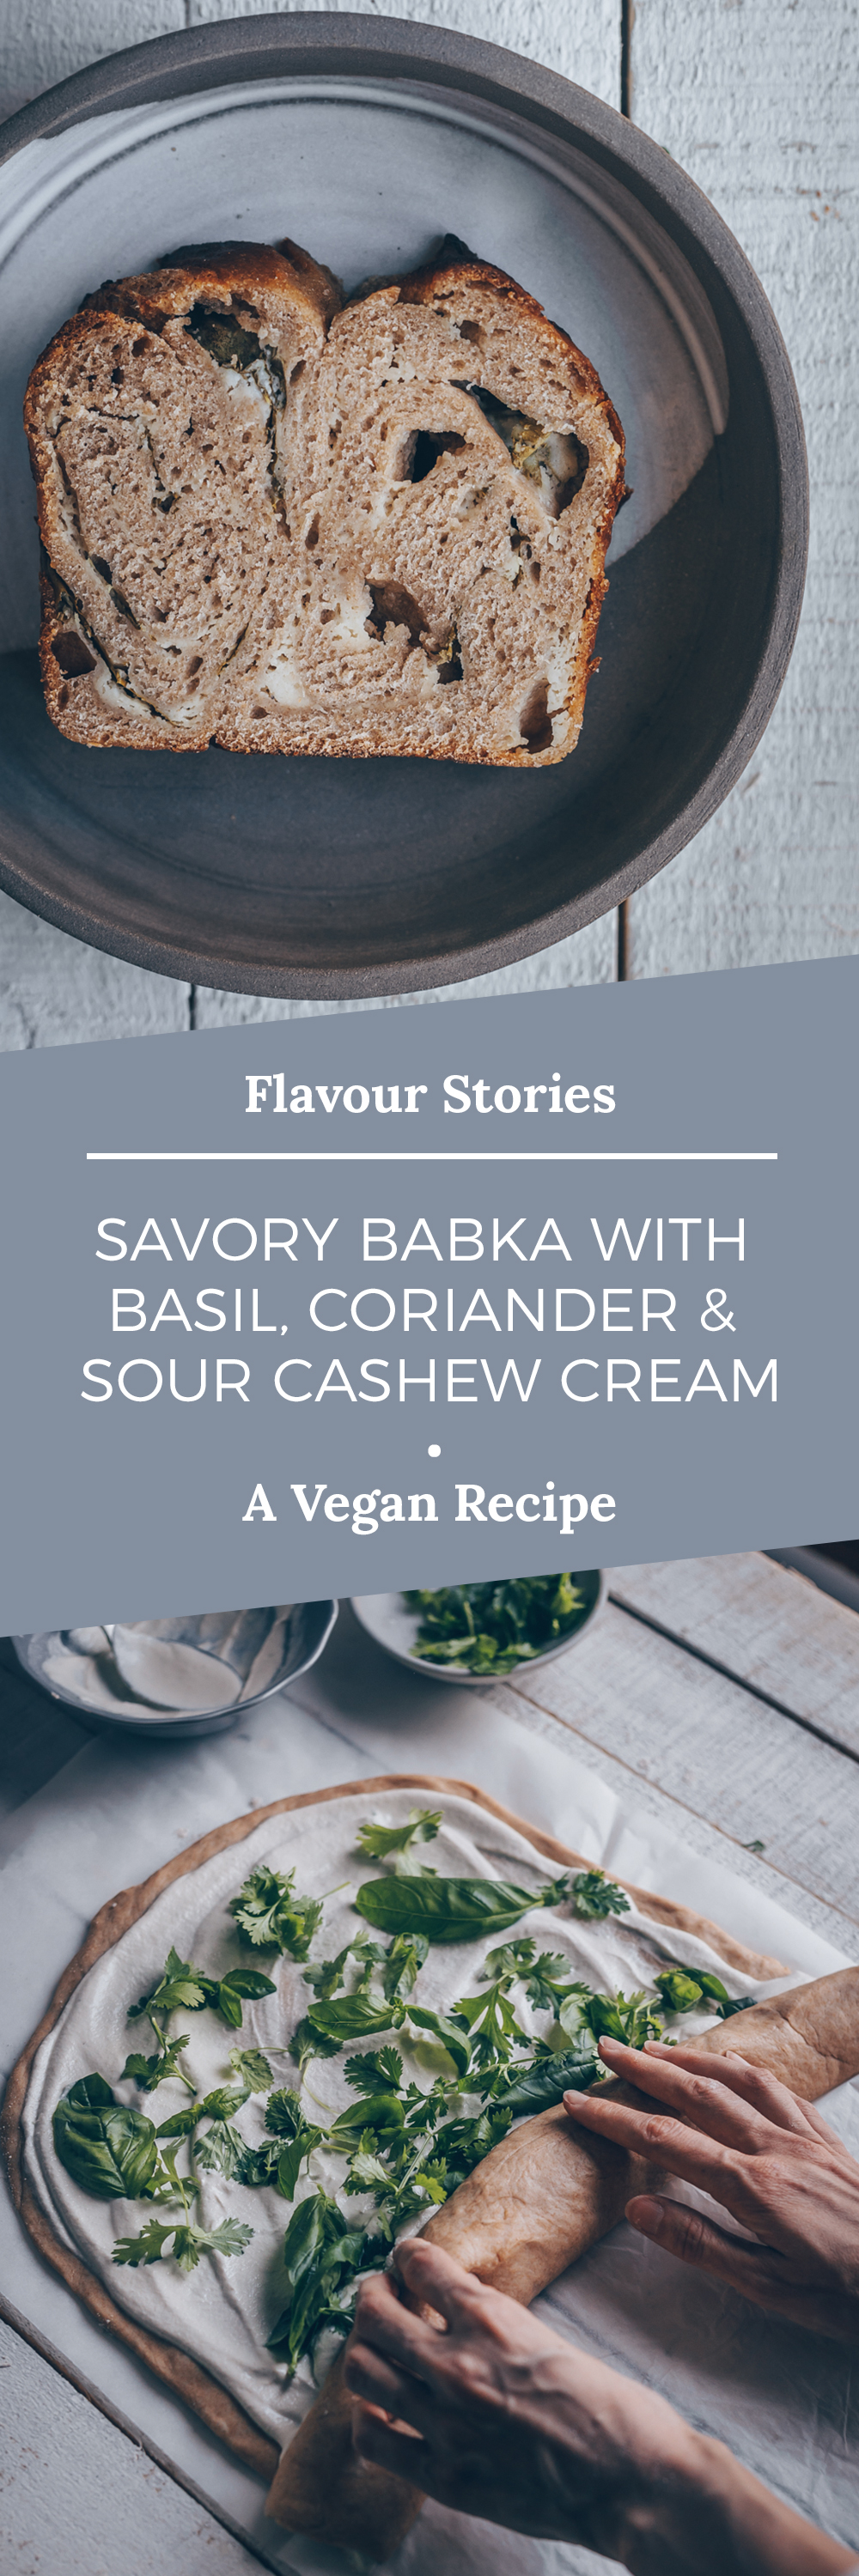 It's a savory vegan babka bread filled with coriander, basil and cashew sour cream. With a sweet crust outside and a soft herb twist inside. Delicious fresh out of the oven, topped with avocado or toasted with pinch of coarse salt and a drizzle of olive oil.